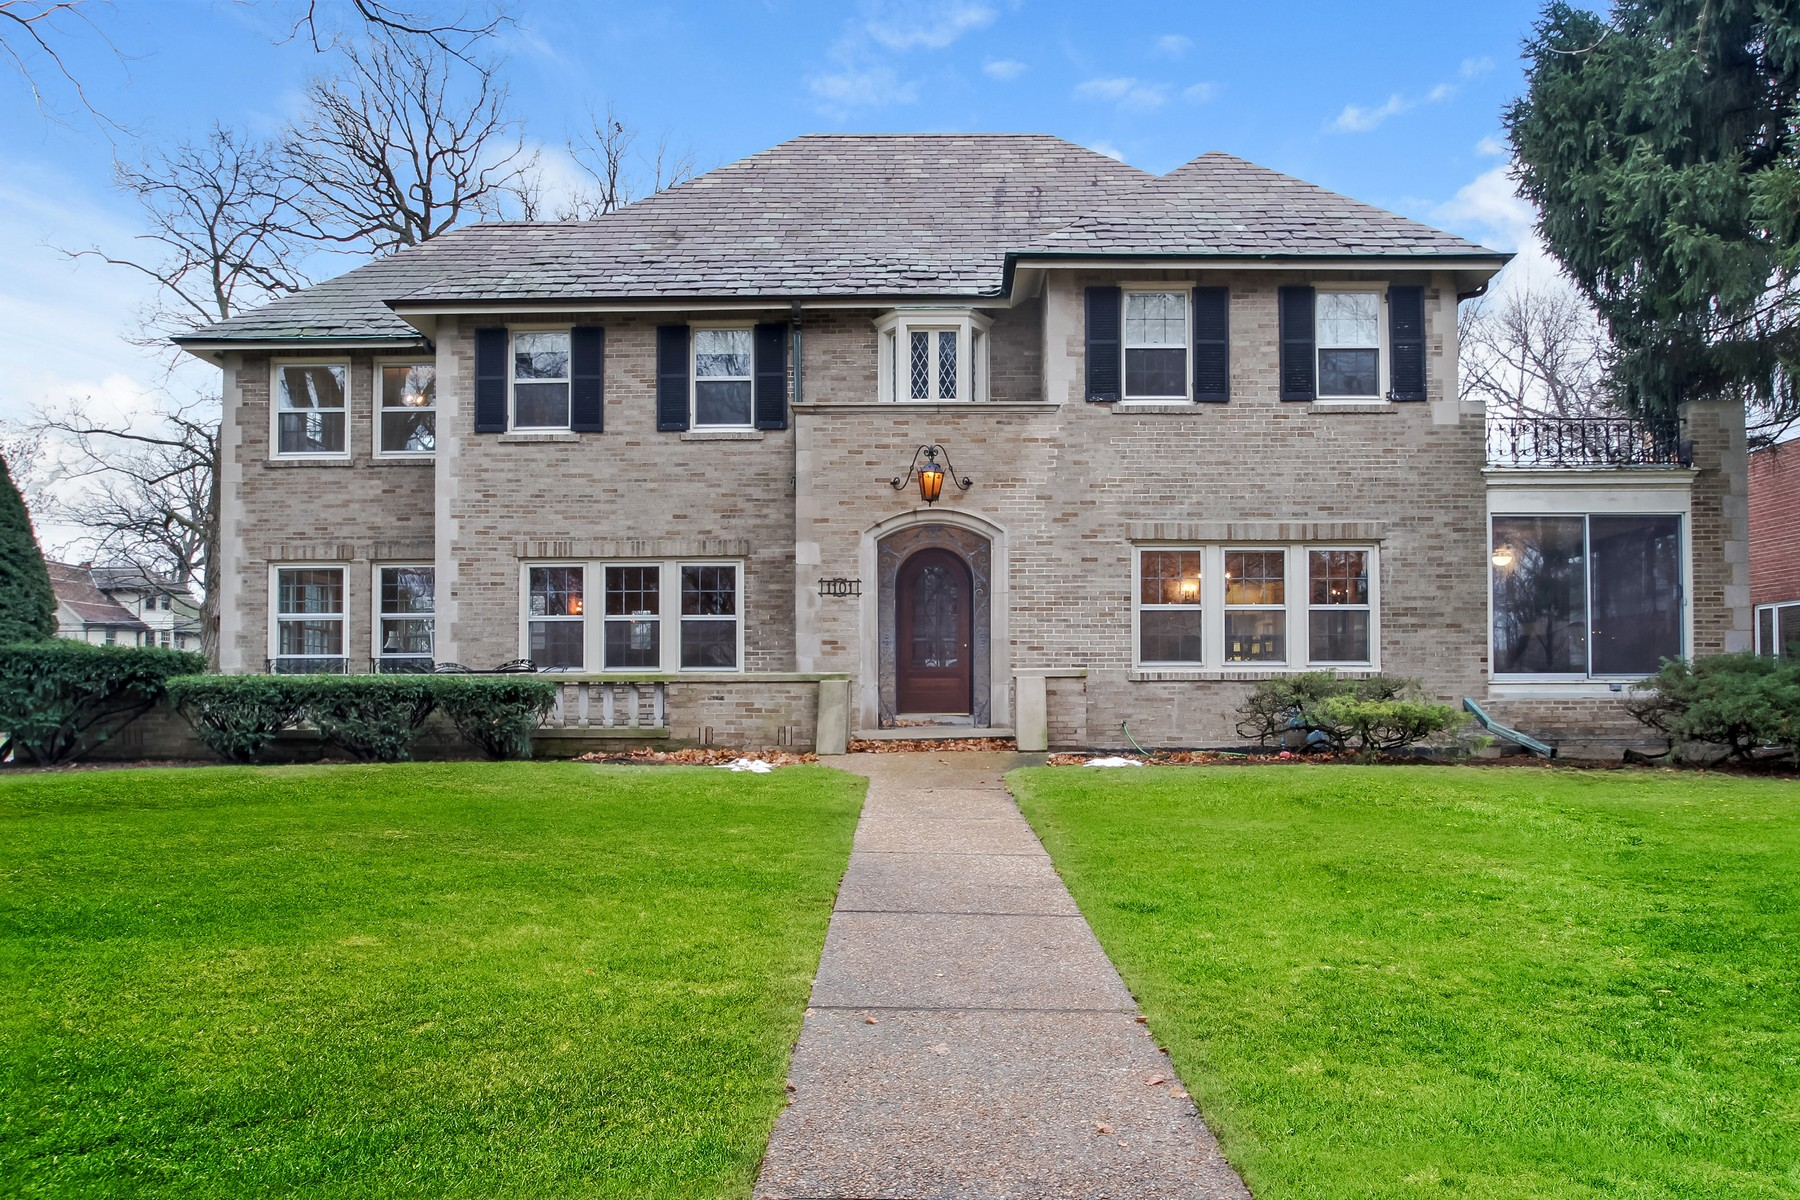 Maison unifamiliale pour l Vente à Situated On Extra Large Lot In The Heart Of The Historic Chestnut District 1101 Chestnut Avenue Wilmette, Illinois, 60091 États-Unis